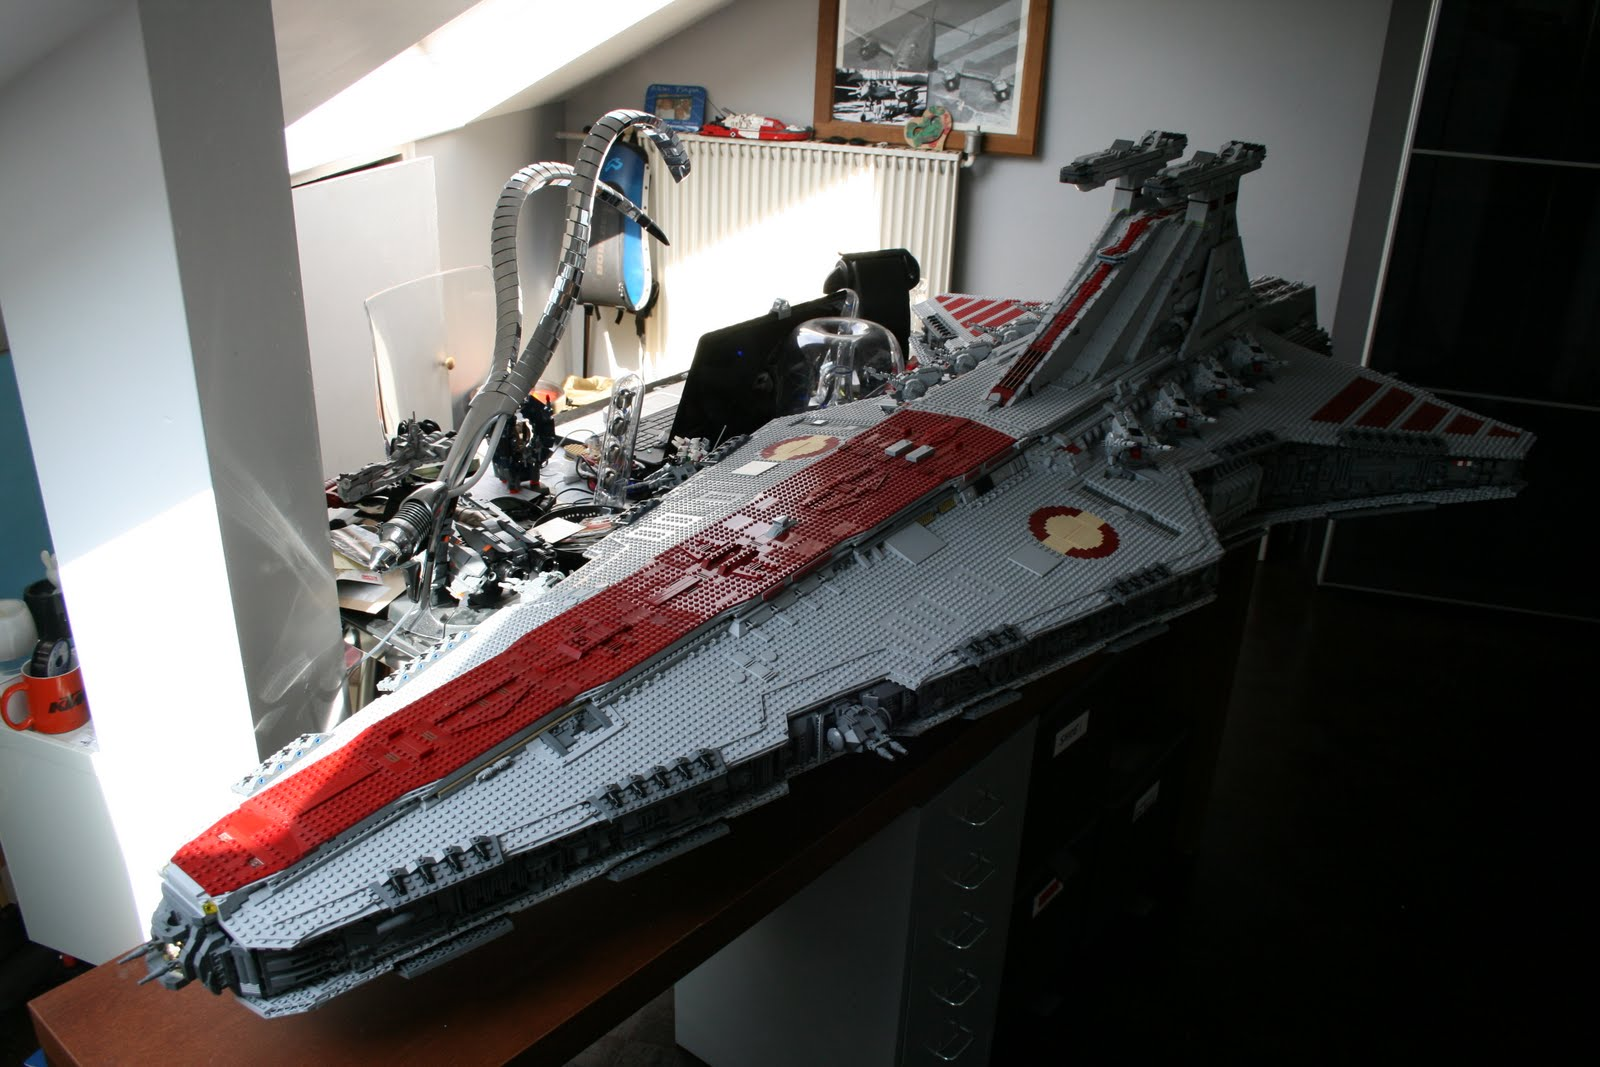 lego republic star destroyer - photo #35